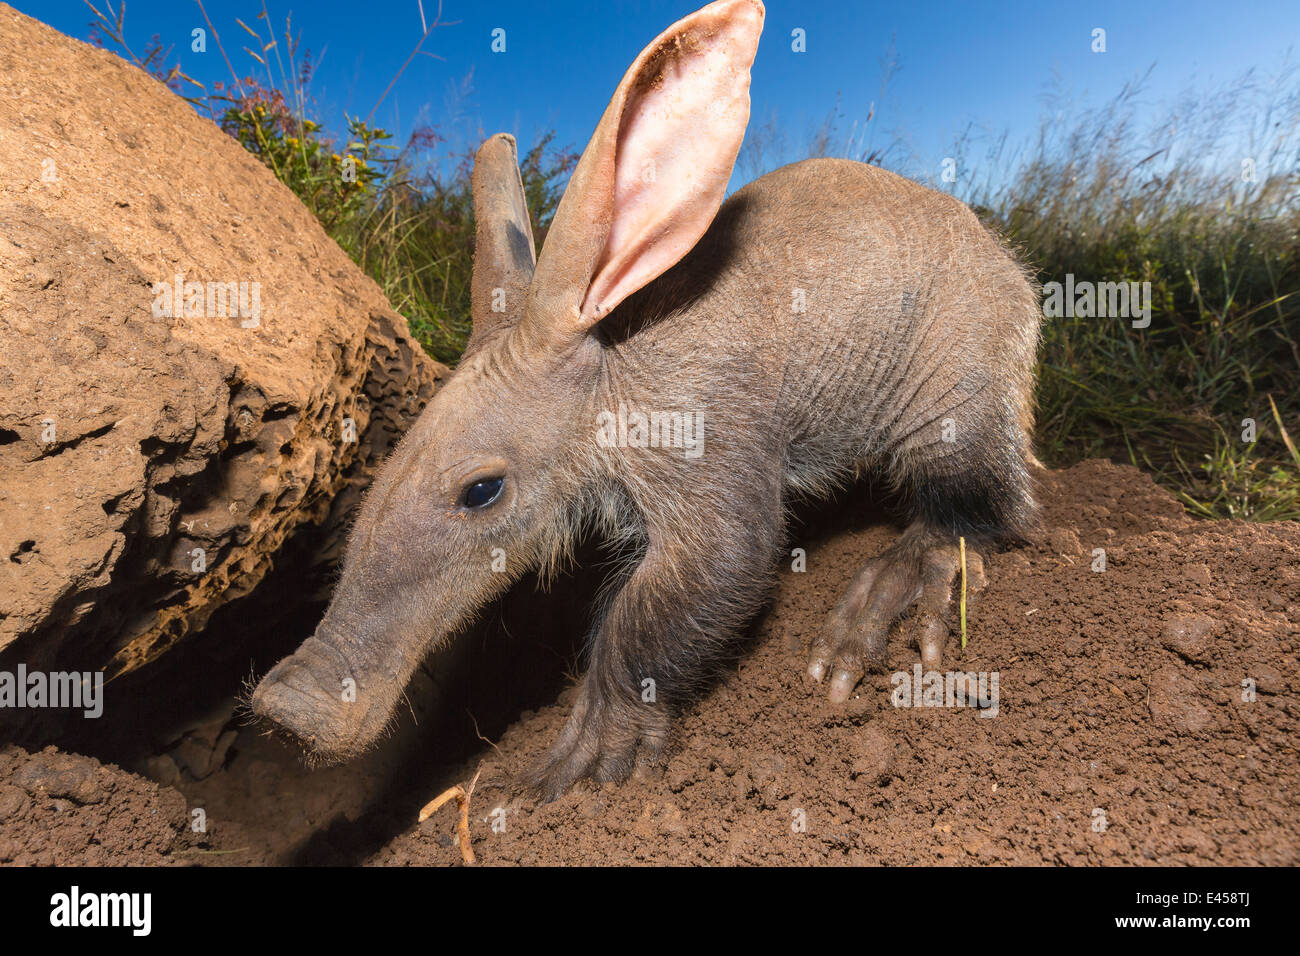 Young aardvark (Orycteropus afer) - Stock Image